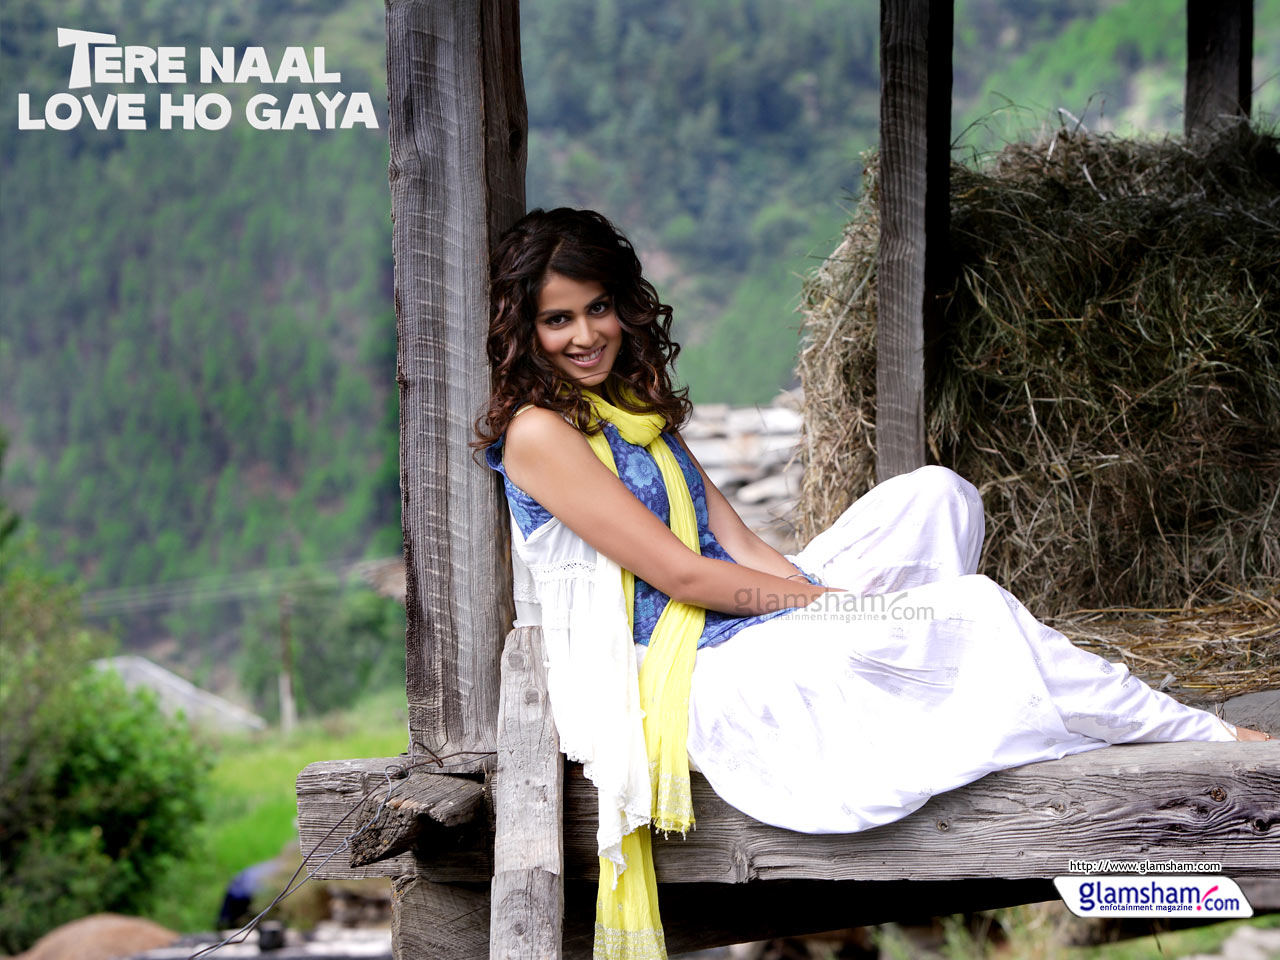 Genelia Dsouza Most Cutest One Images Tere Naal Love Ho Gaya HD Wallpaper And Background Photos